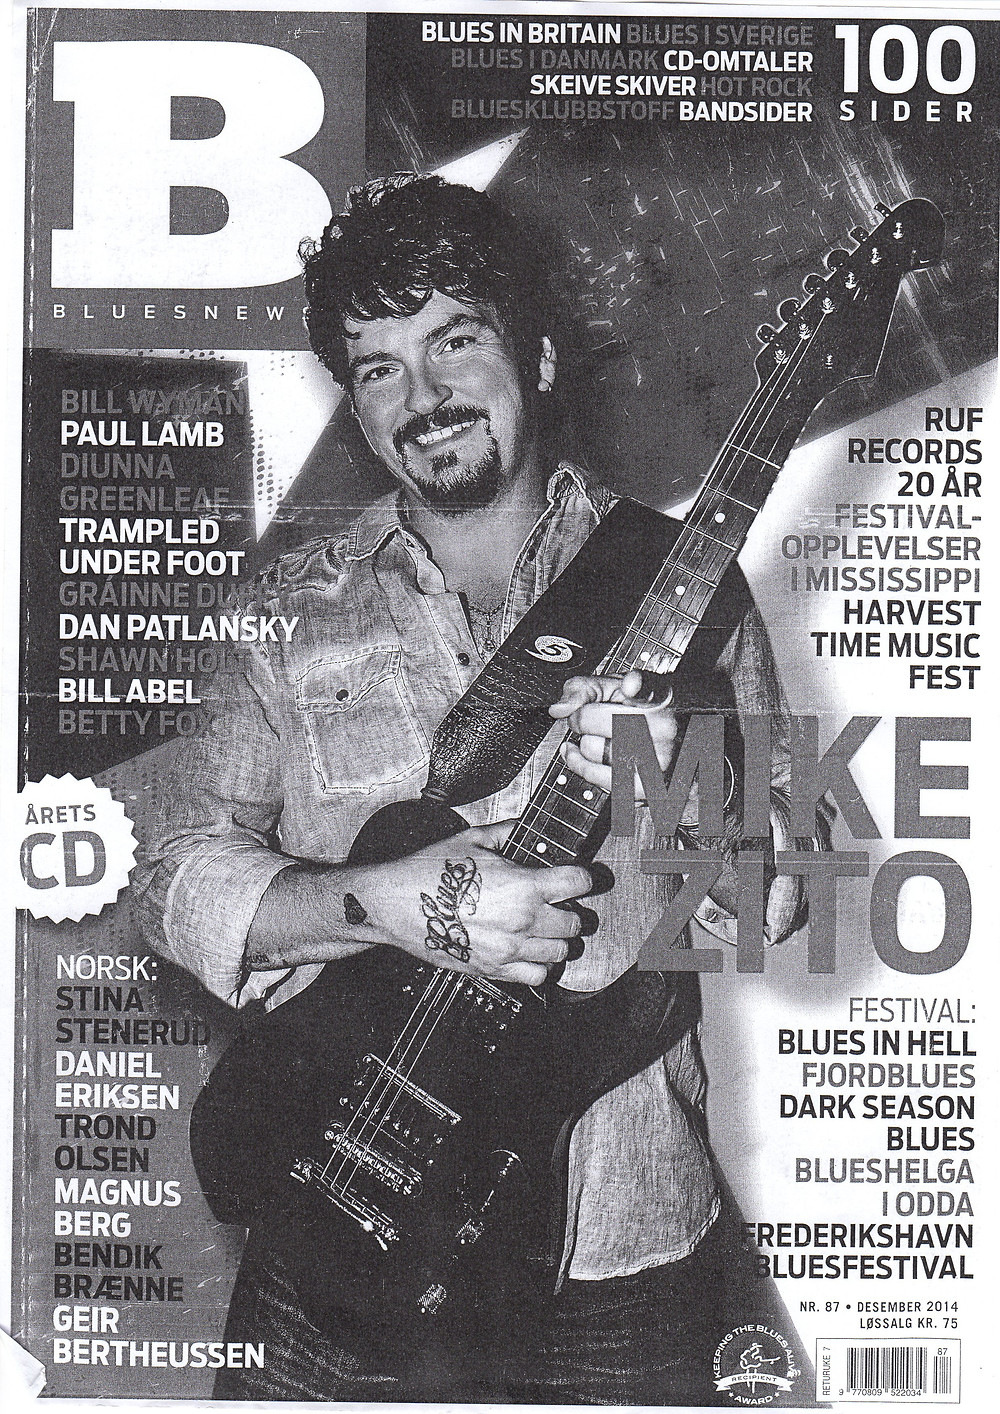 Bluesnews Dec 2014 cover.jpg